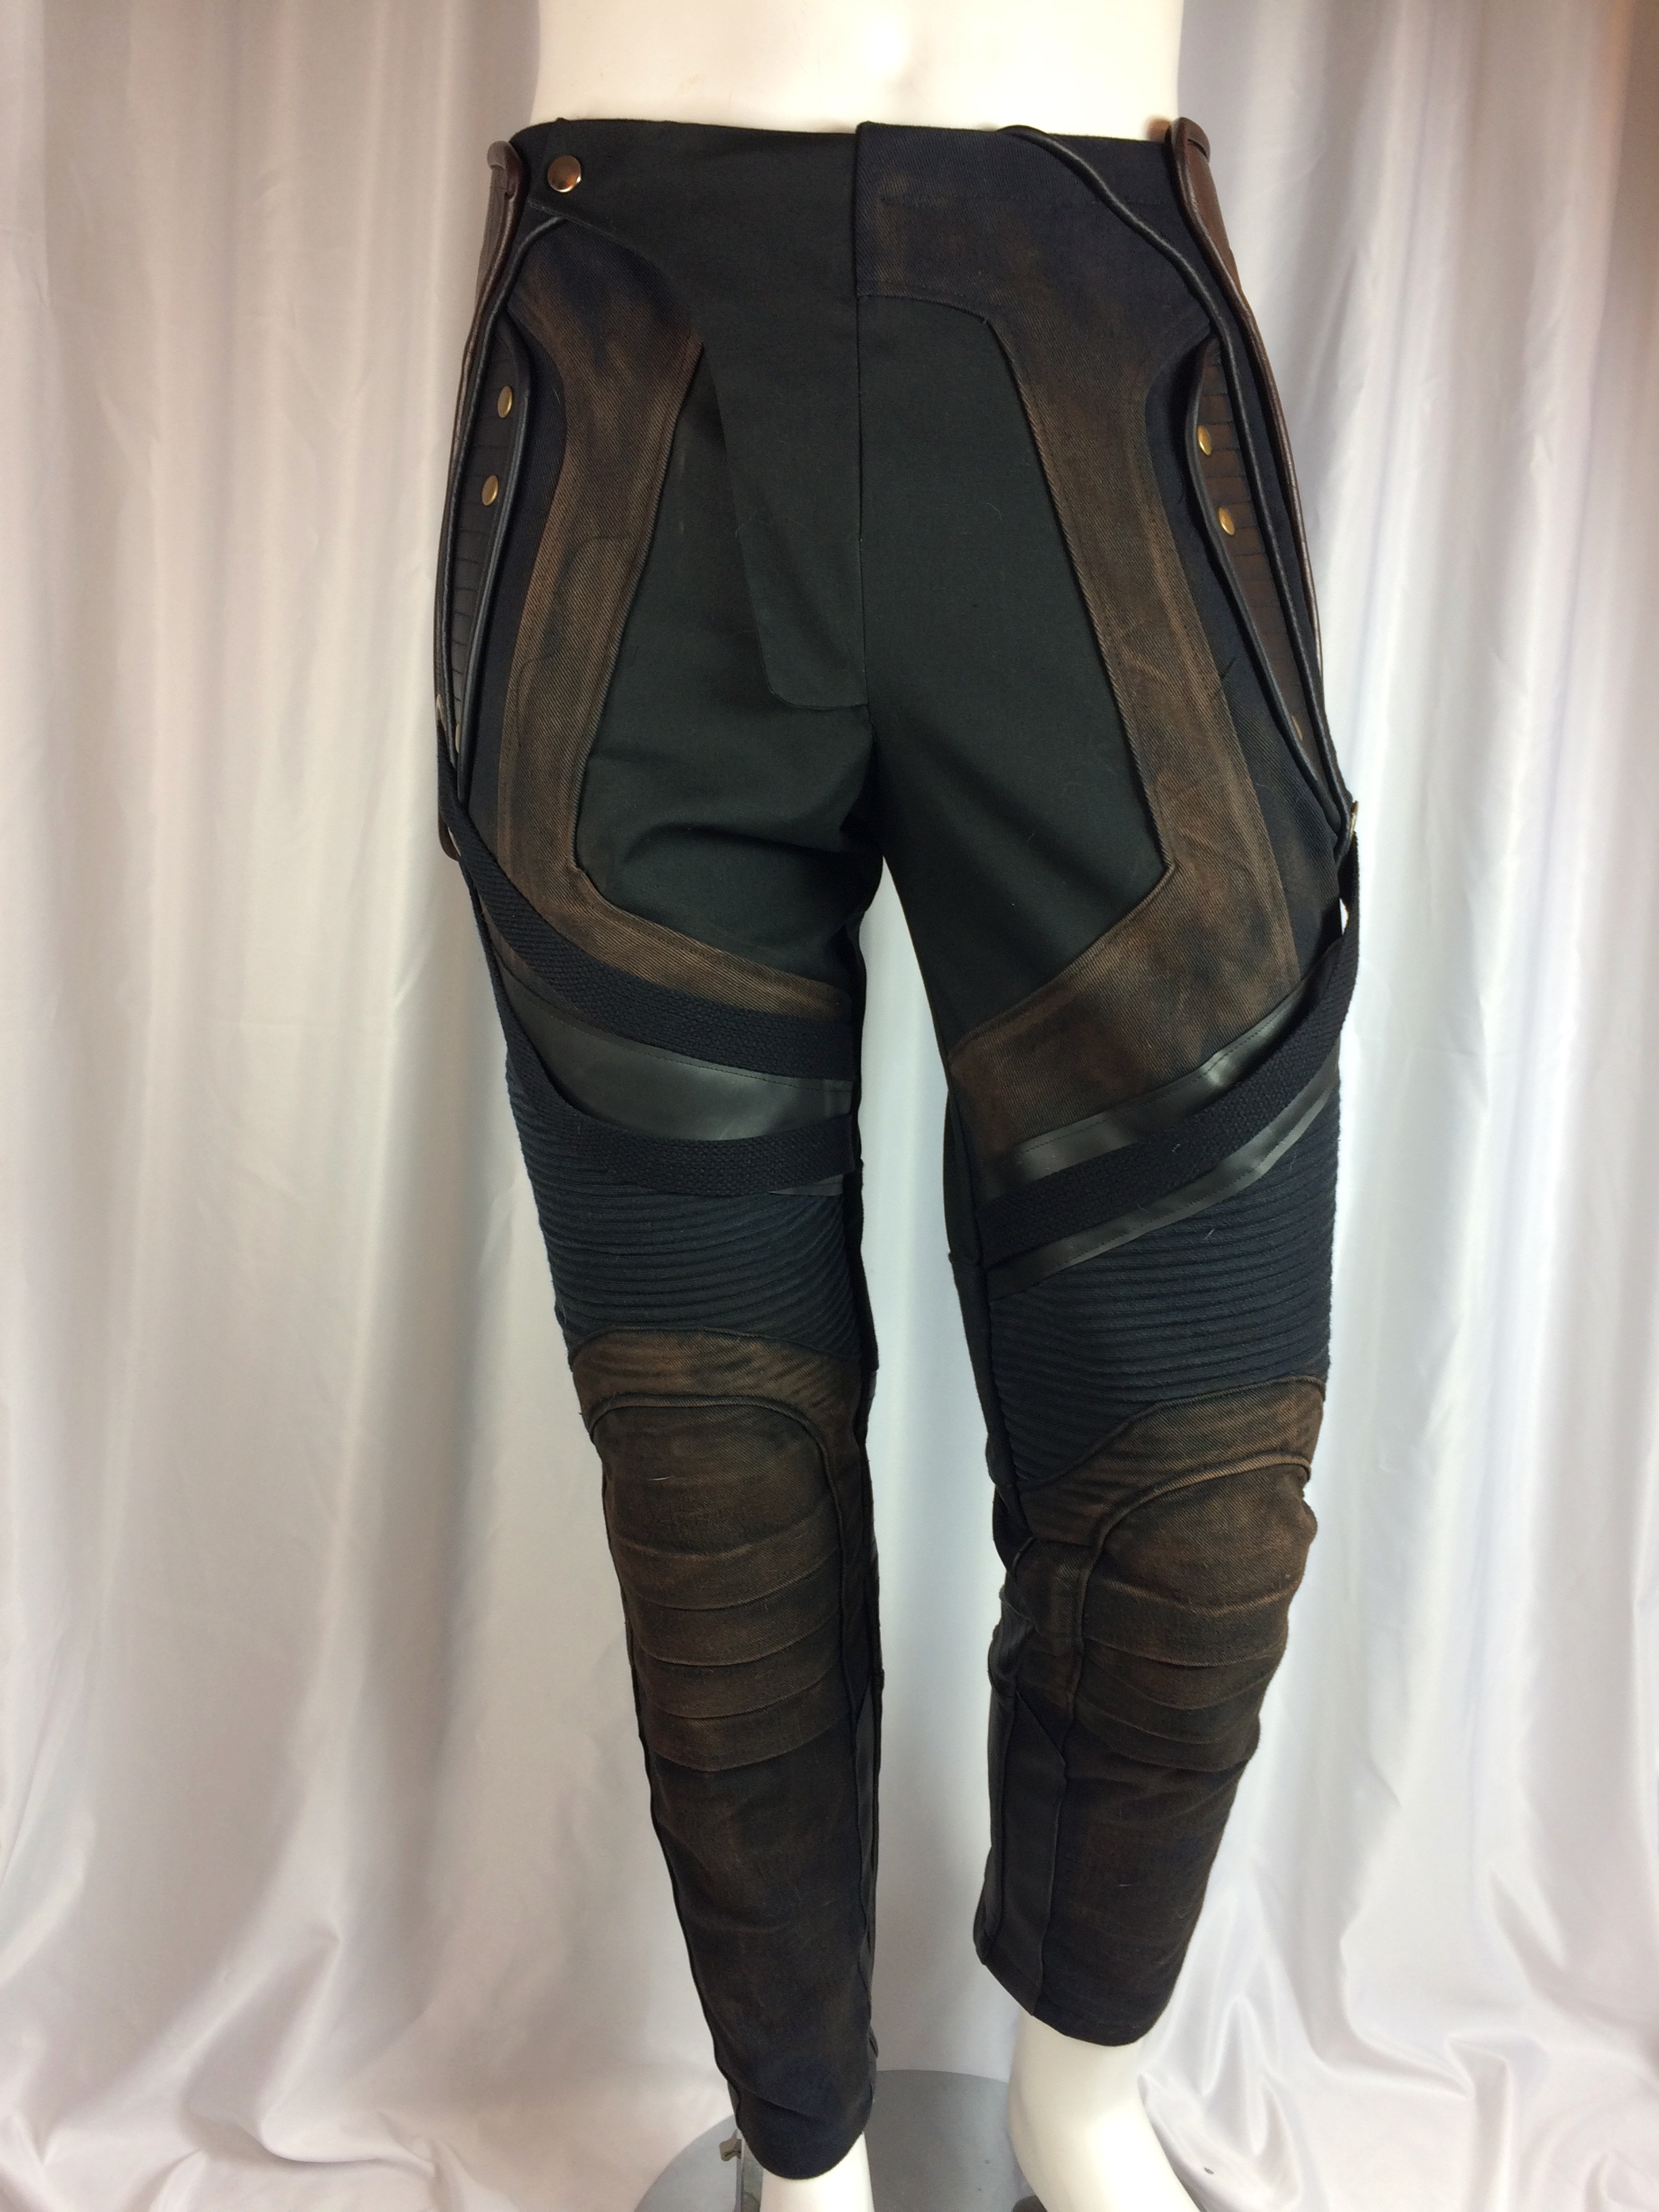 Star Lord Vol 2 Pants